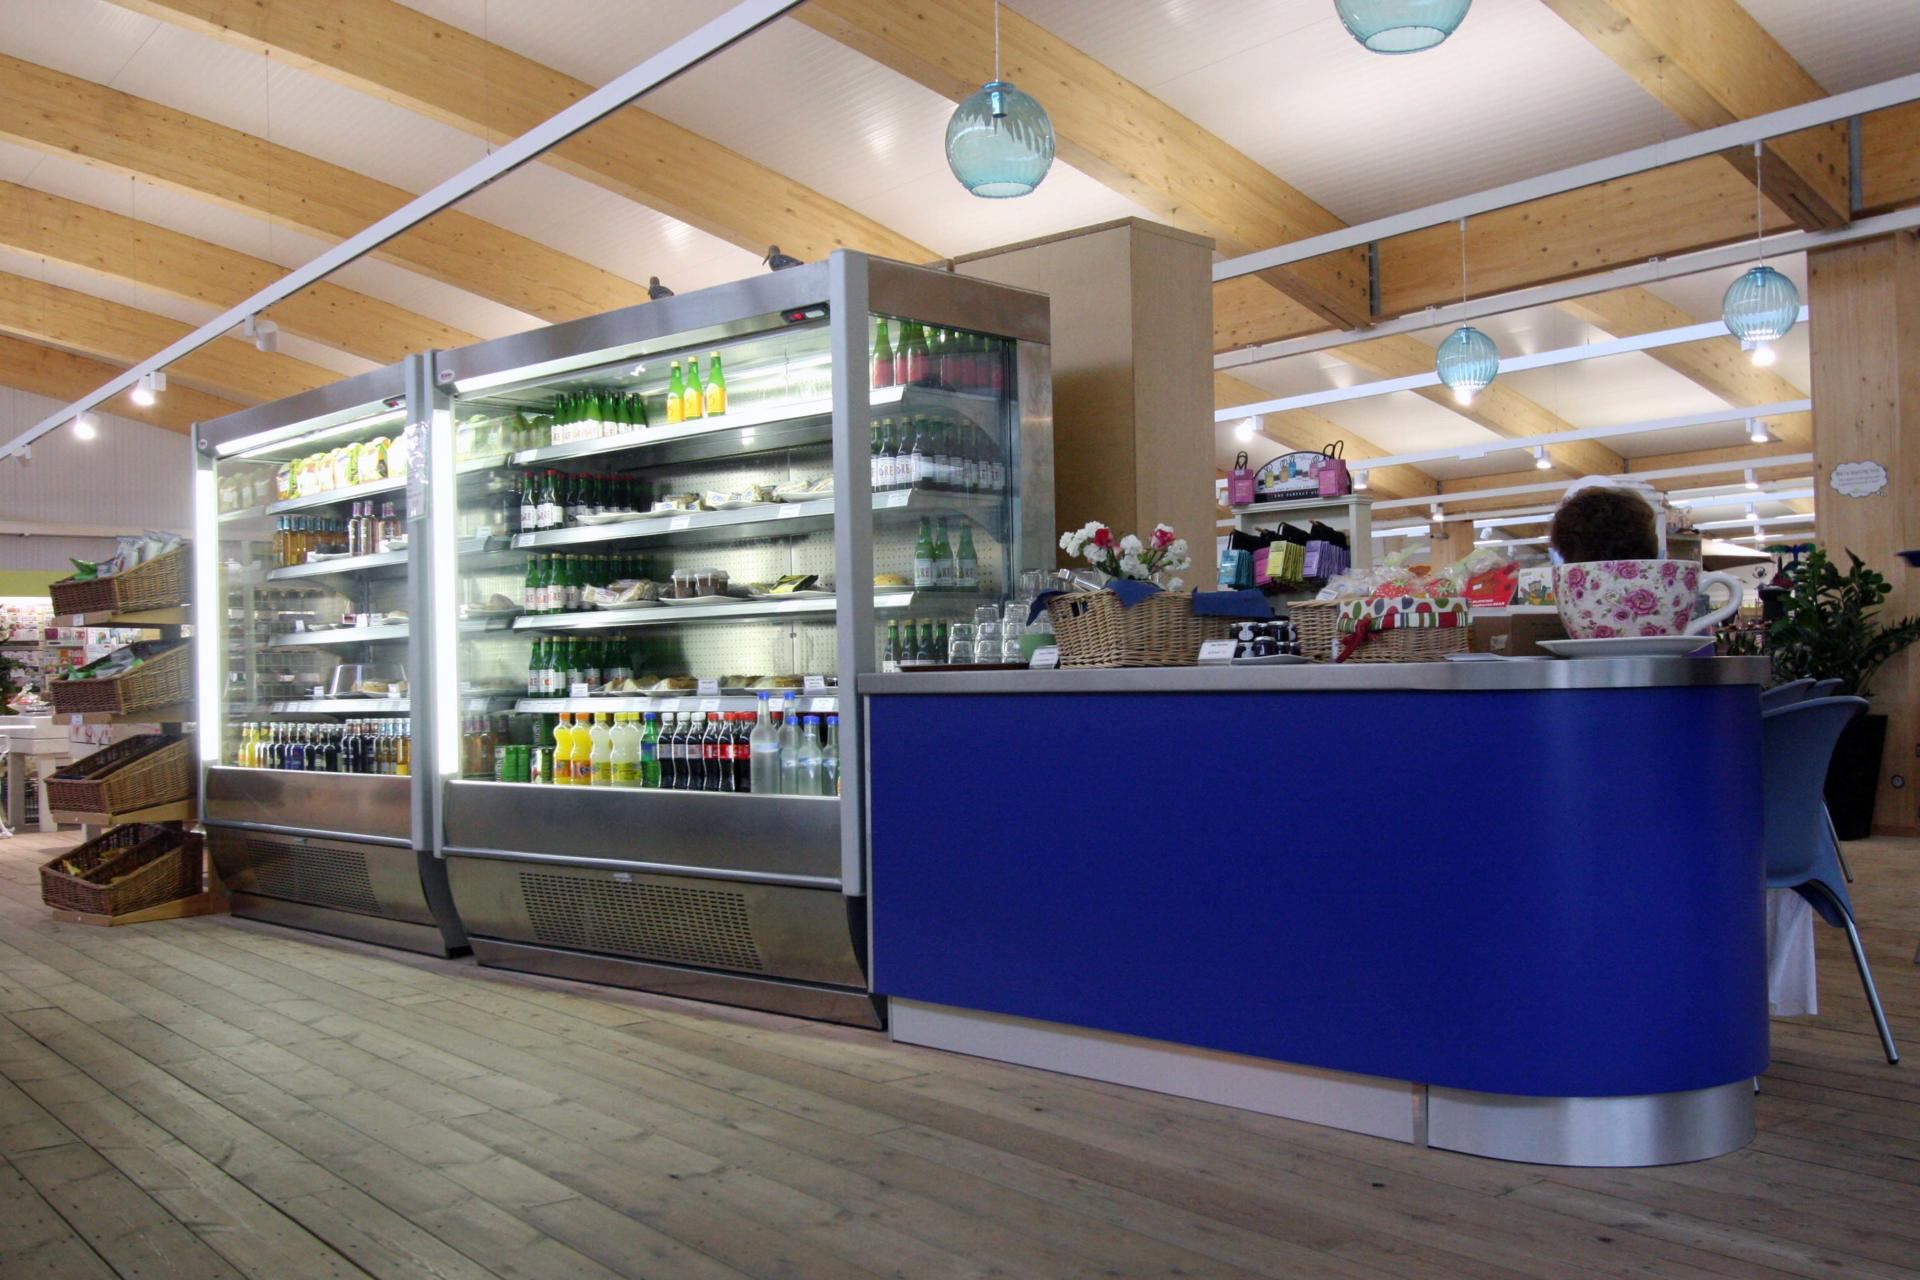 Coolings_Nursery_Knockholt_Kent_Front_of_house_Servery_Food Display_spacecatering_4